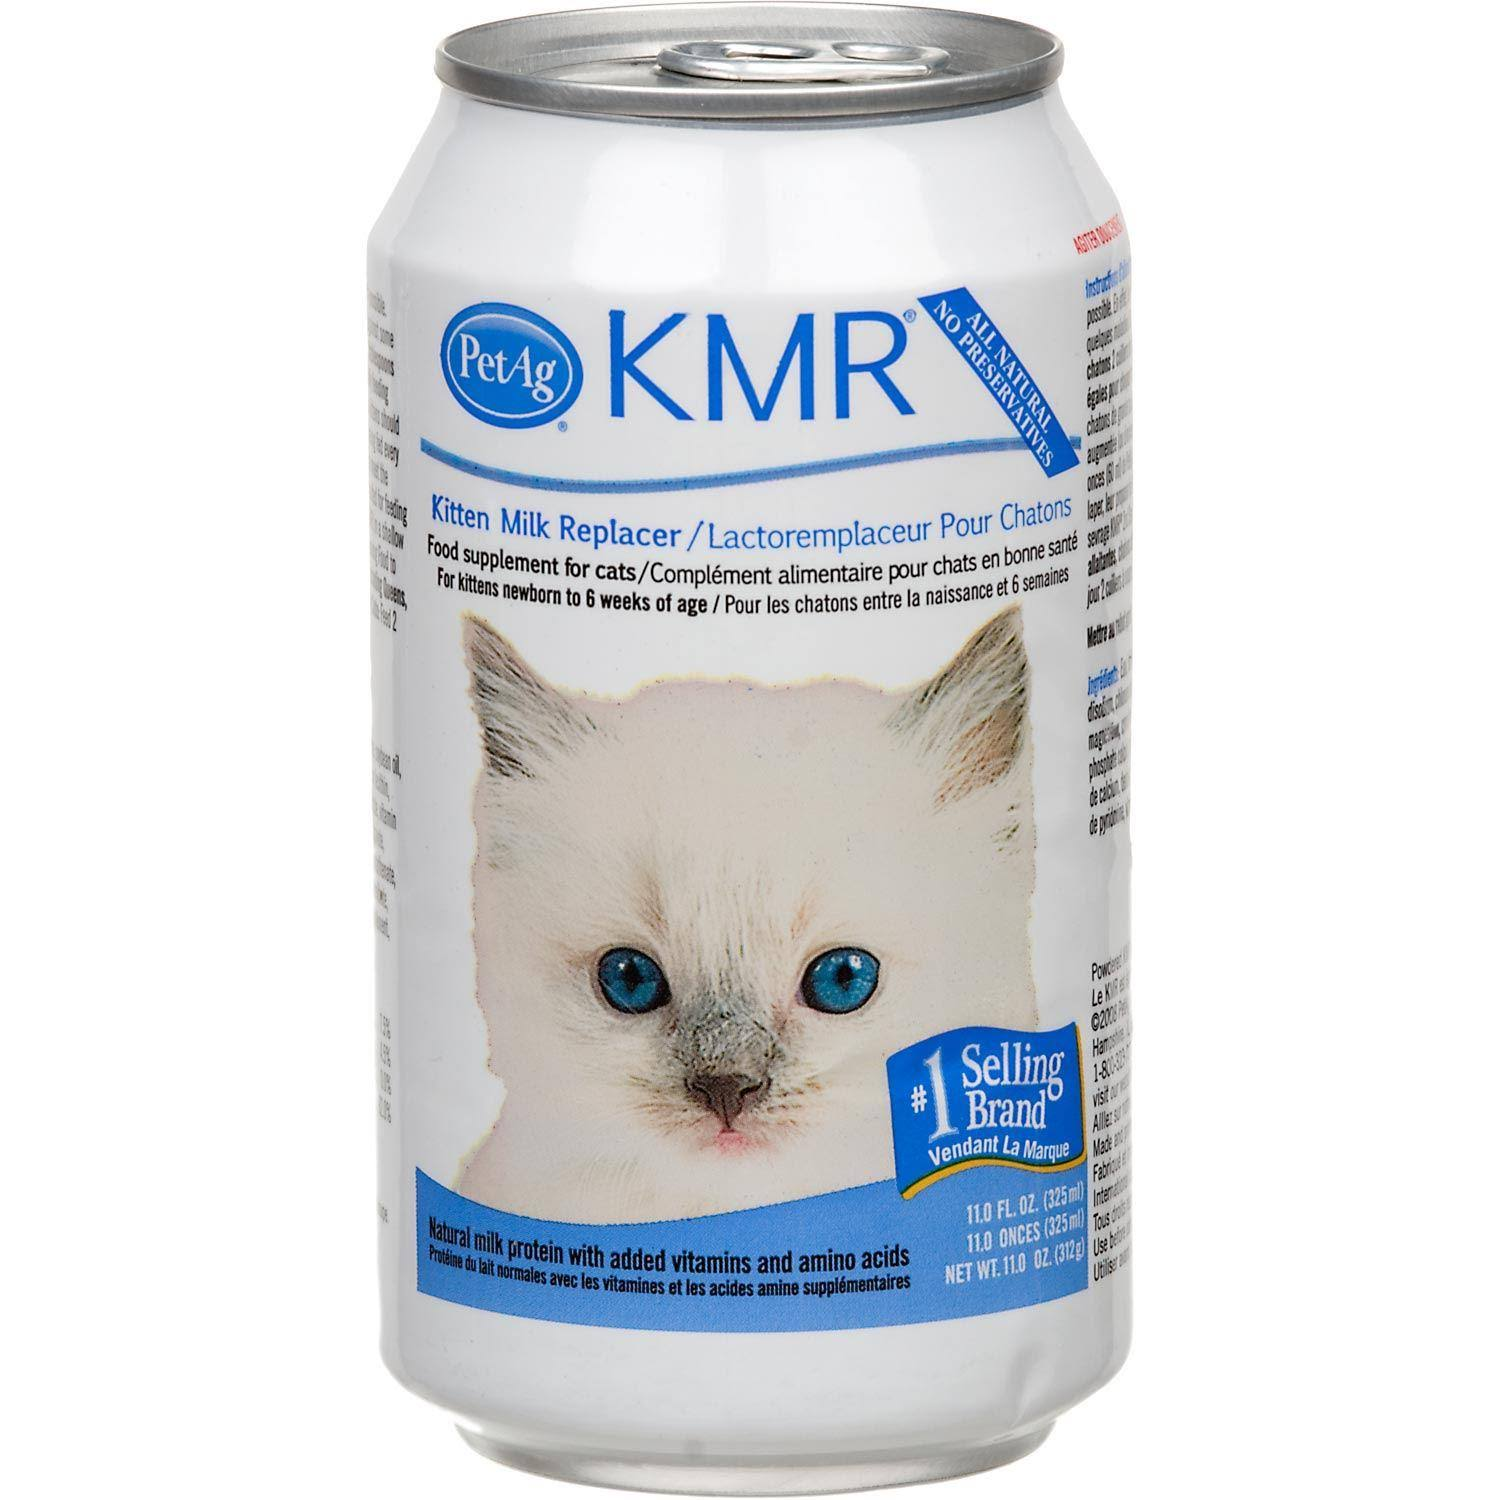 PetAg KMR Kitten Milk Replacer